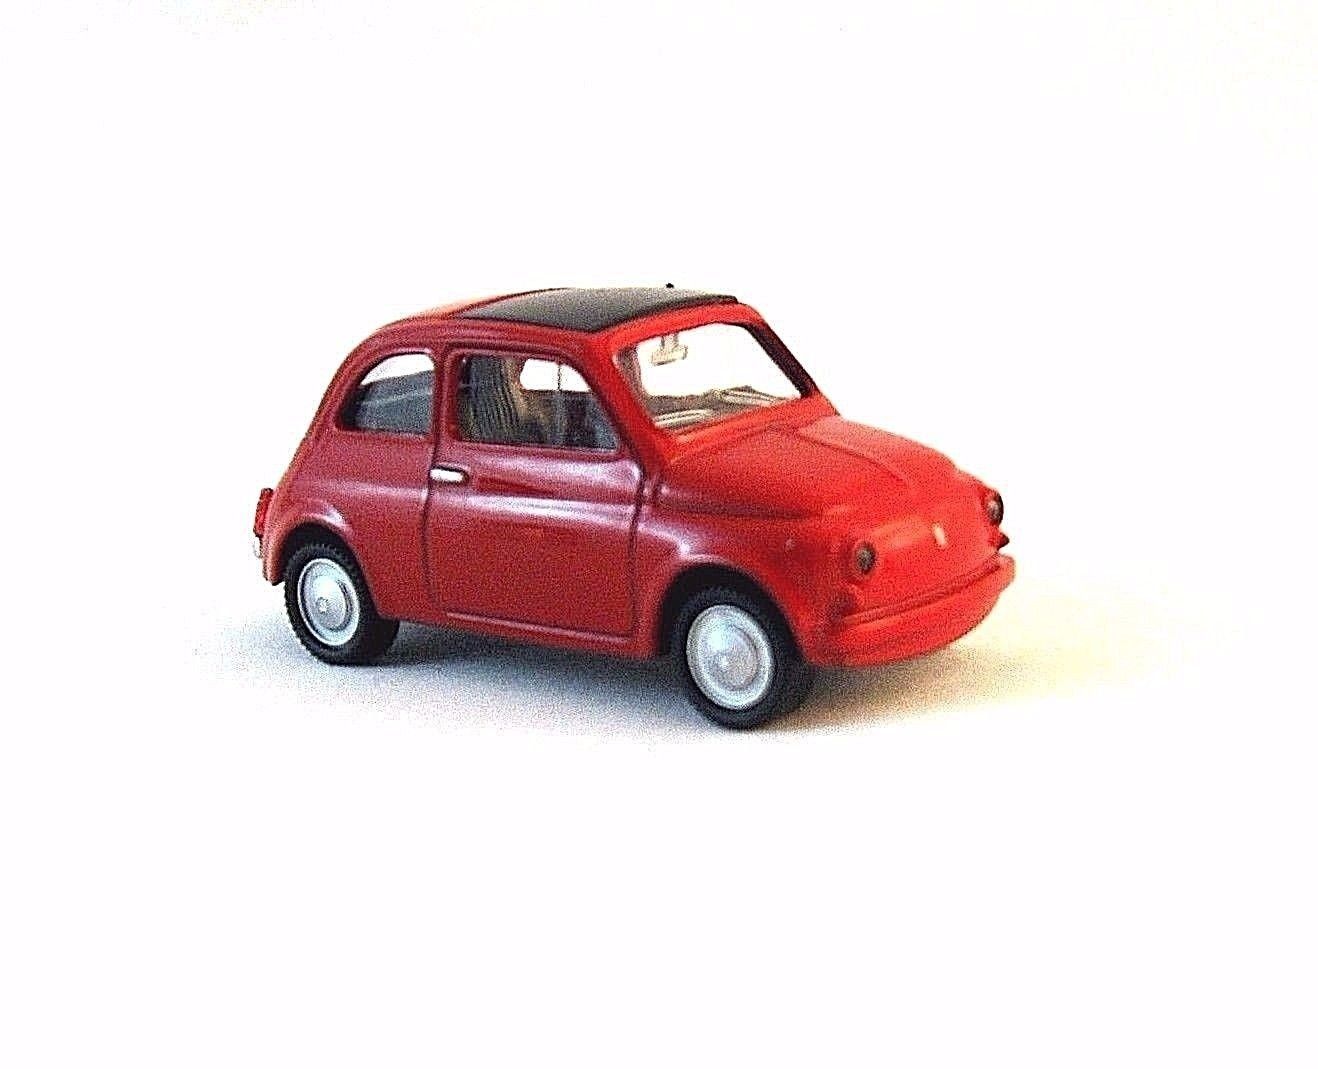 FIAT 500 RED MONDOMOTORS1/43 DIECAST CAR MODEL,OFFICIAL FIAT PRODUCT,COLLECTIBLE